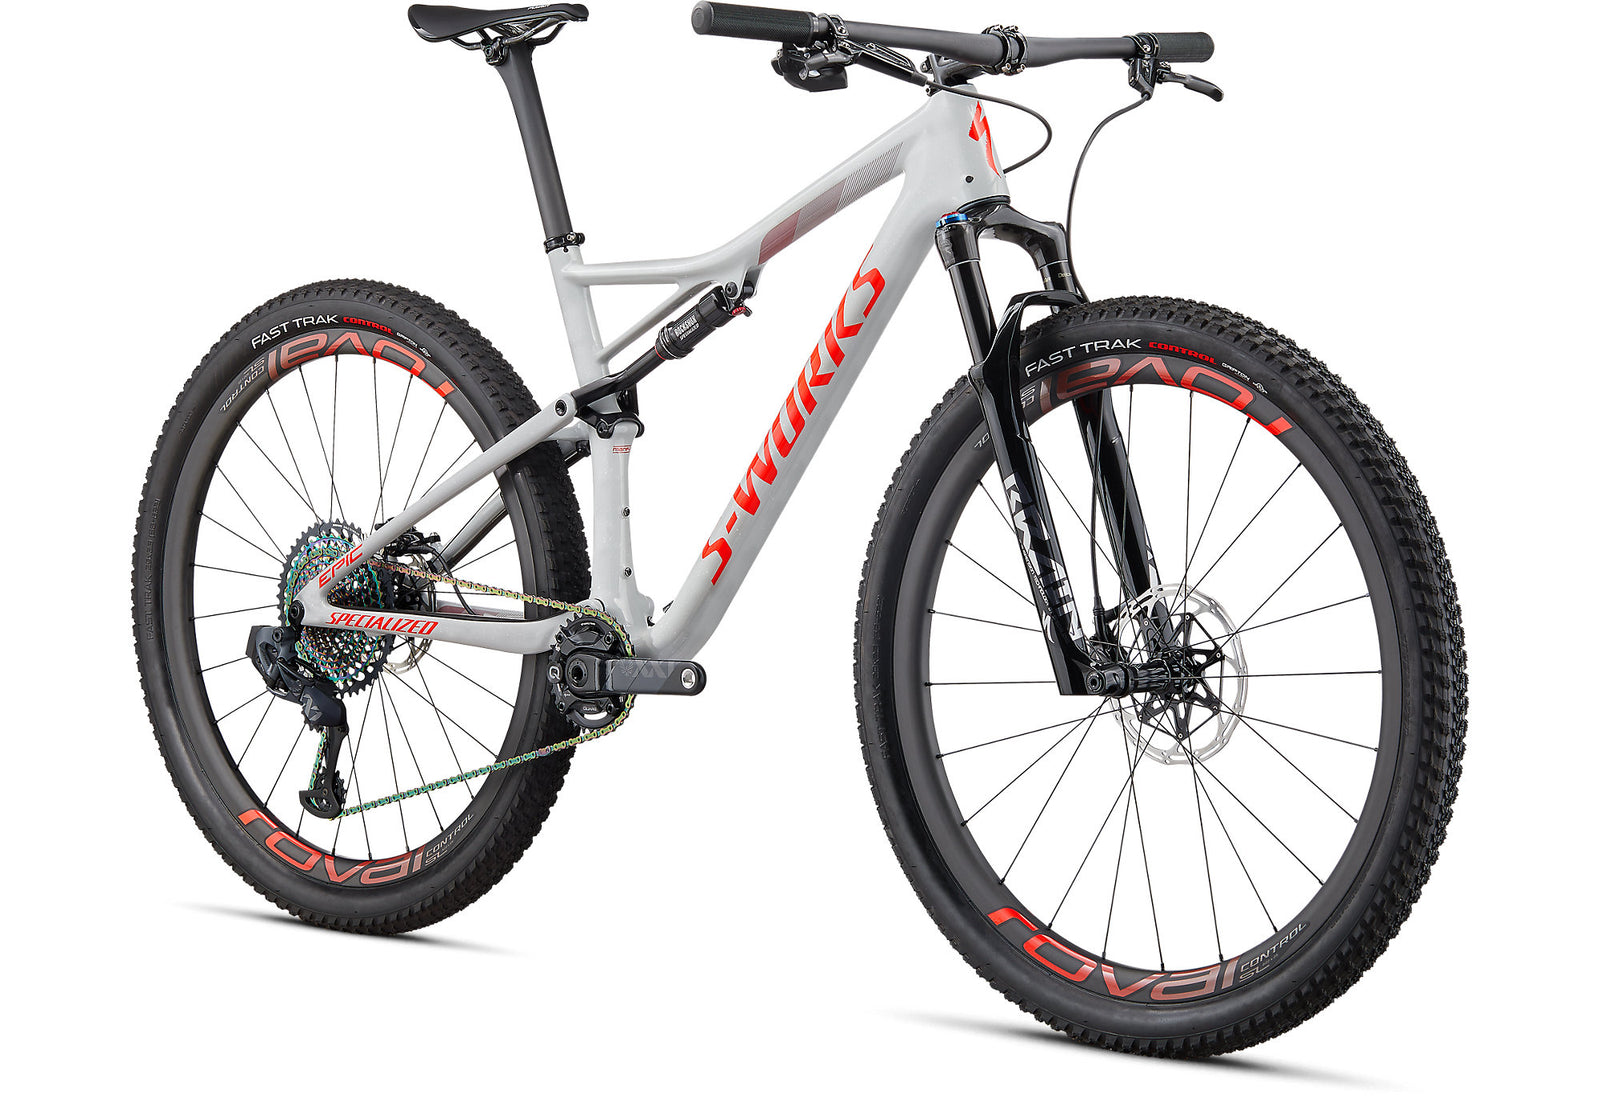 2020 S-Works Epic AXS